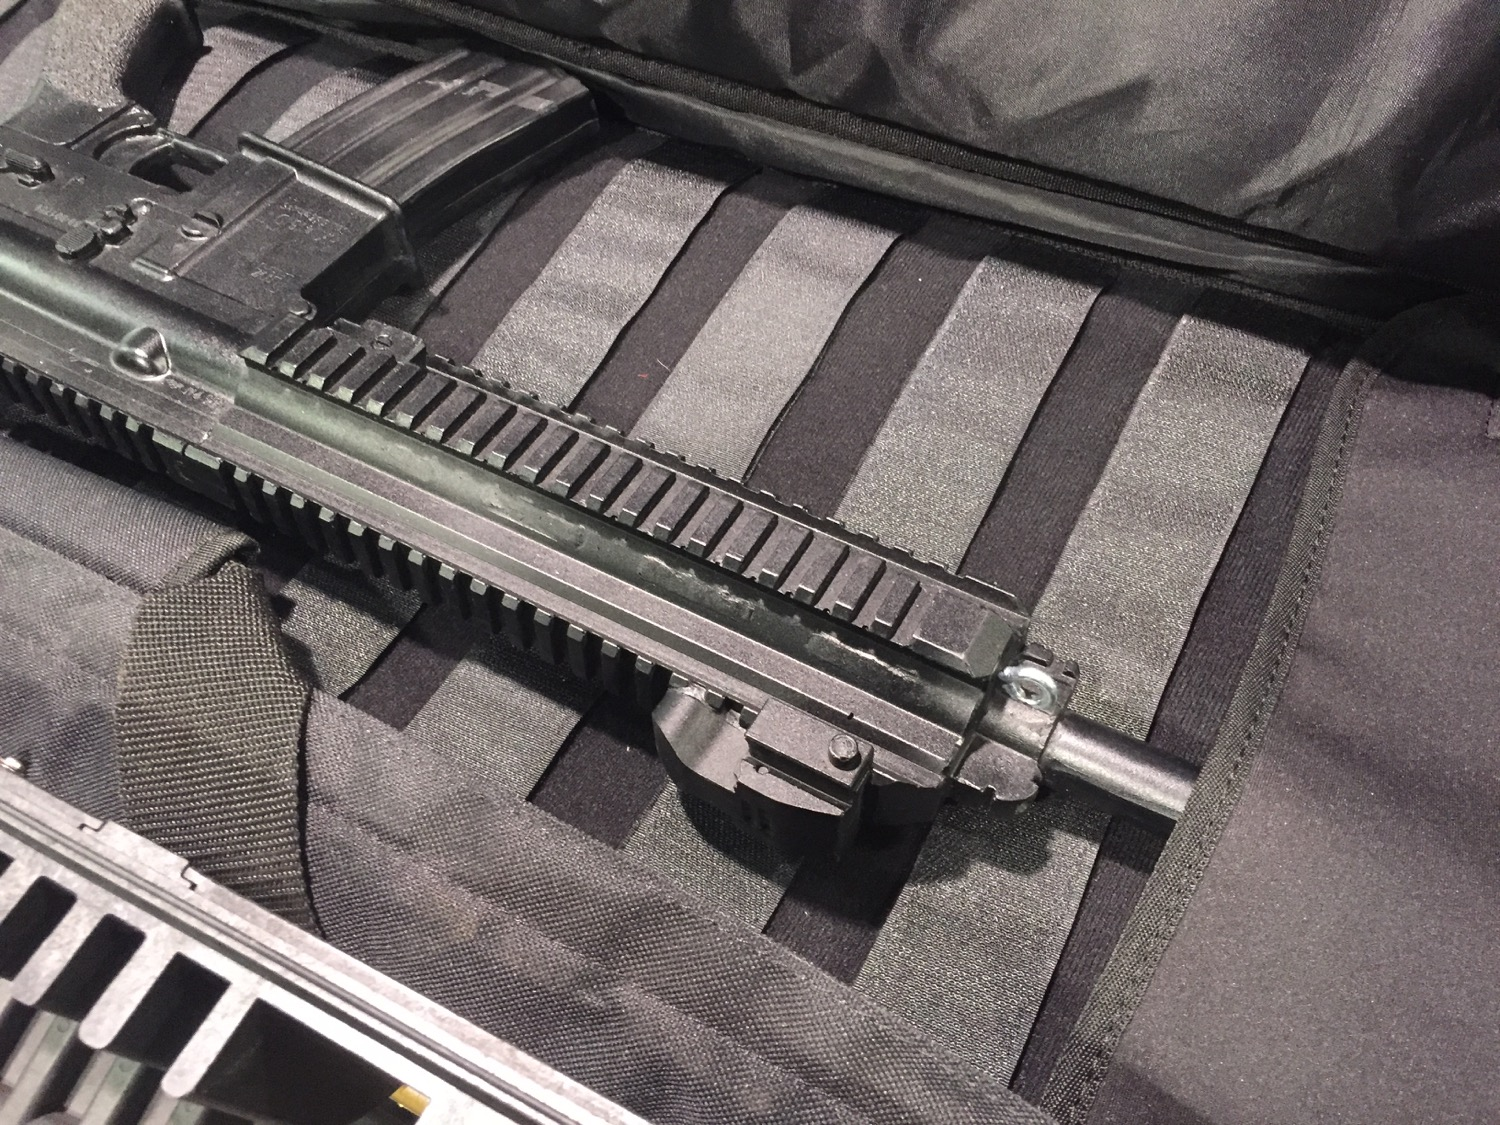 Rifle case with a soft insert that is layered with loop fastener (allowing you to secure things how you like)